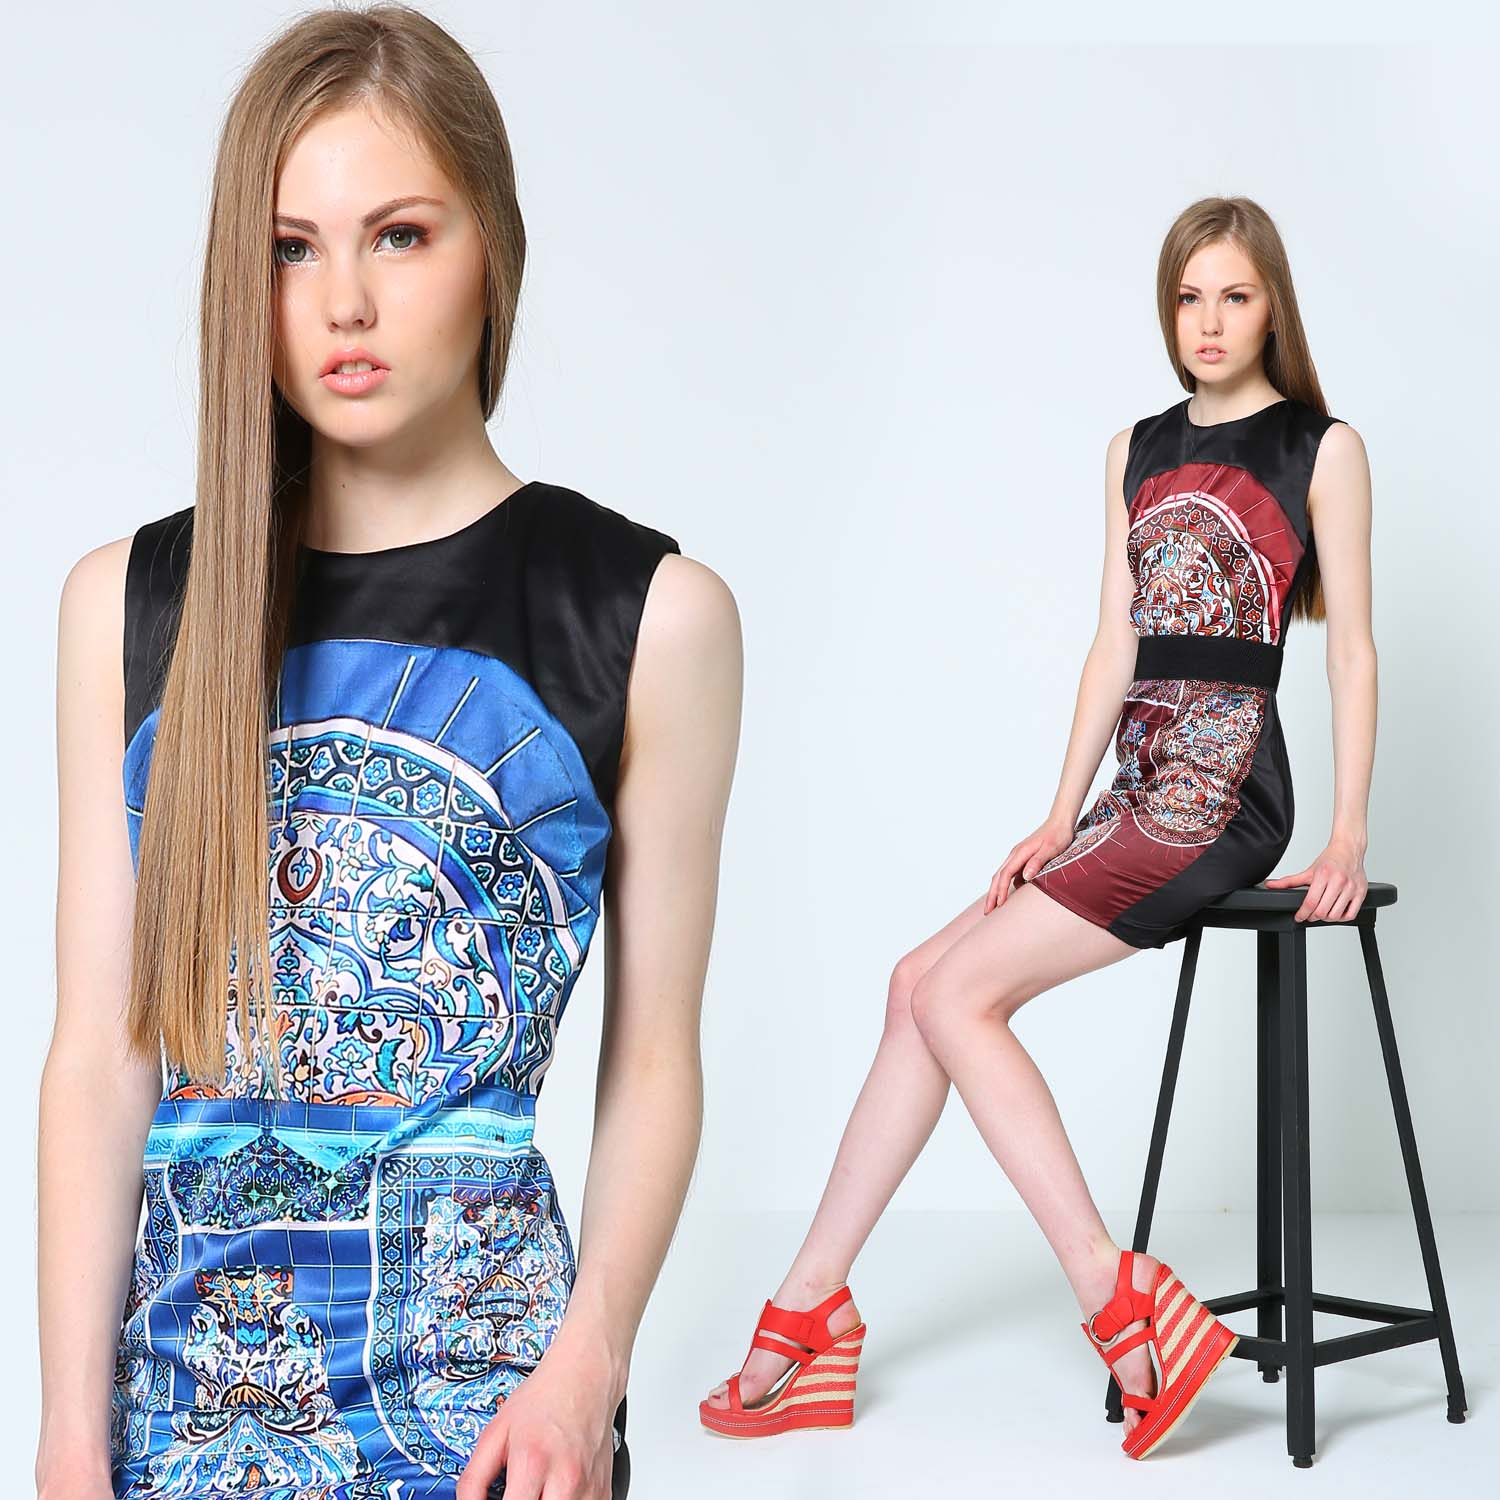 Freeway Holiday 2013 Lookbook: Moroccan Patterns and Macro Florals